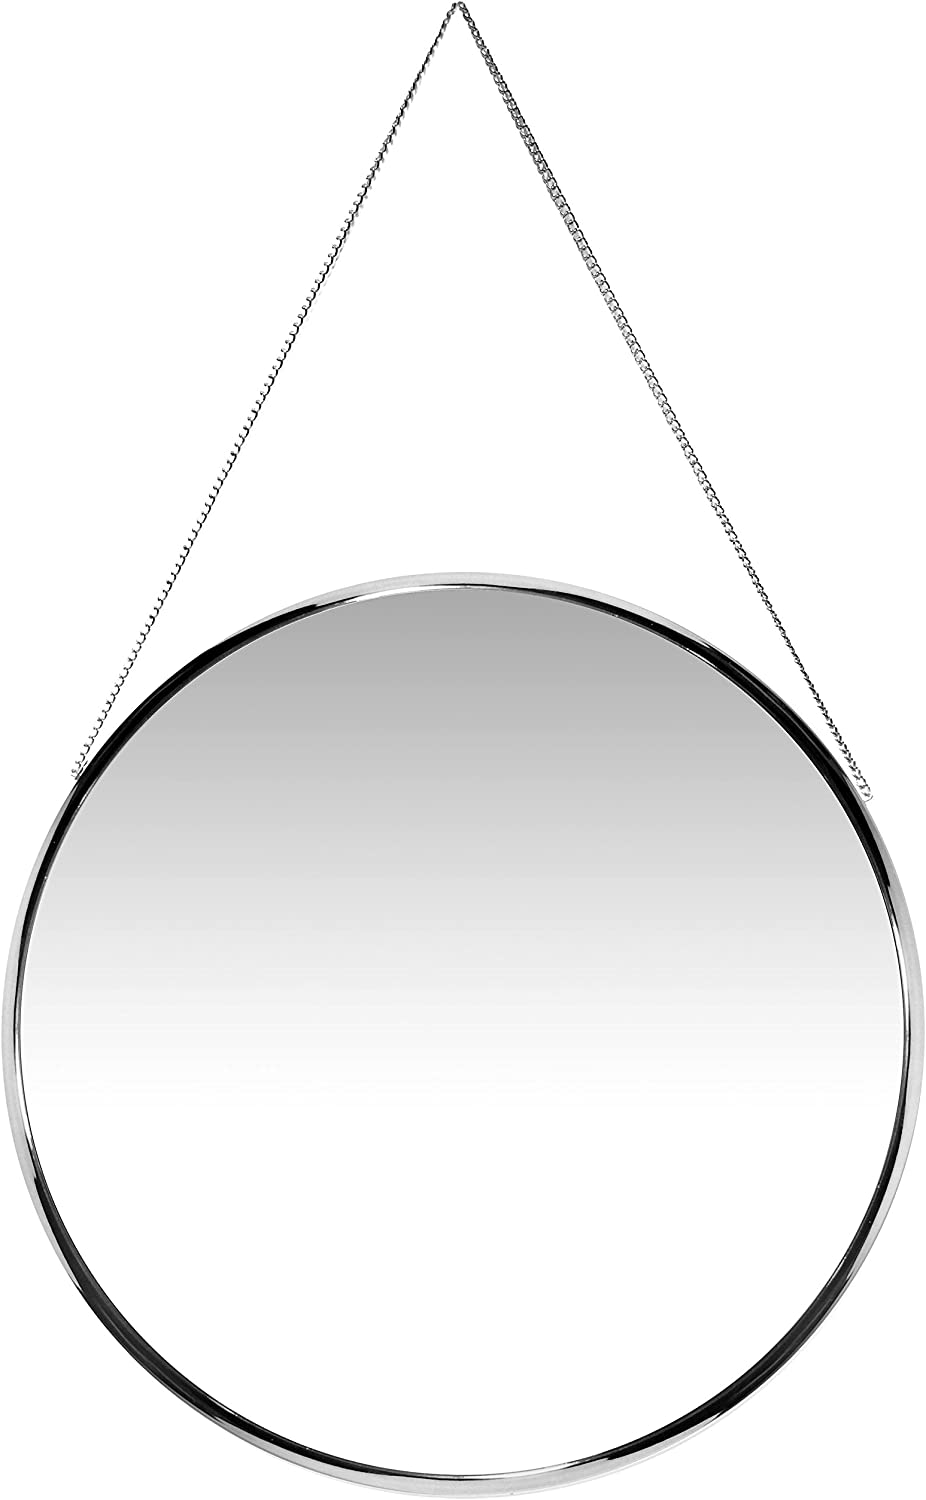 Infinity Instruments Circle Modern Chrome Round 18 inch Mirror with Hanging Chain, Silver